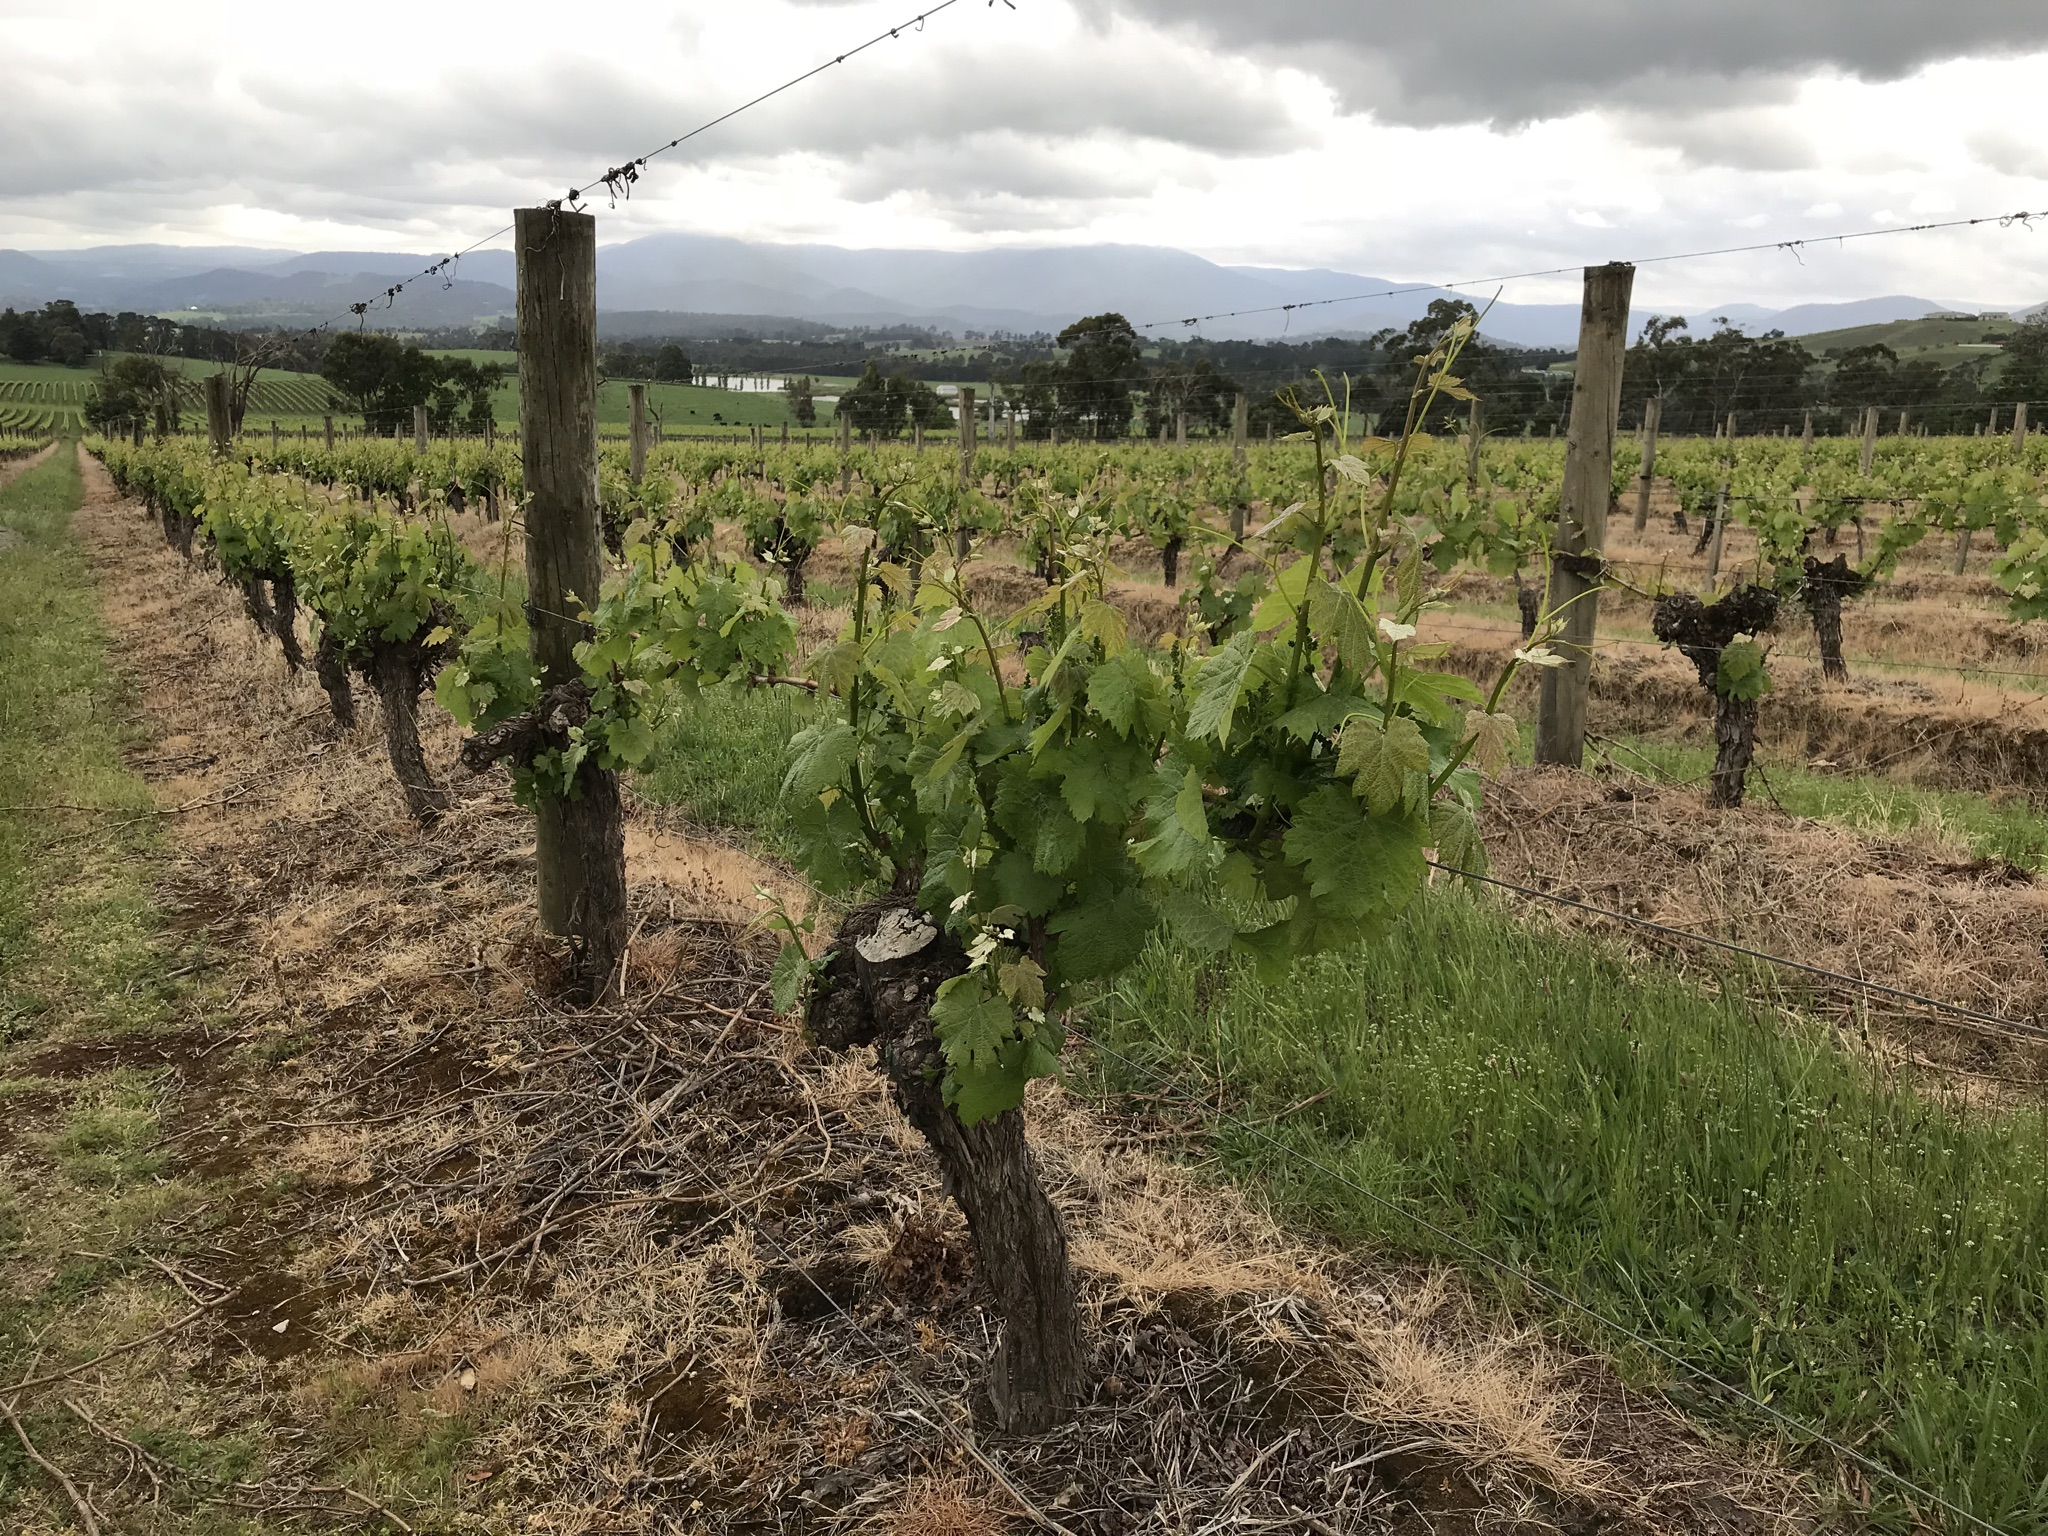 The Yarra Valley in Australia has a well-earned reputation for delicious Pinot Noir.